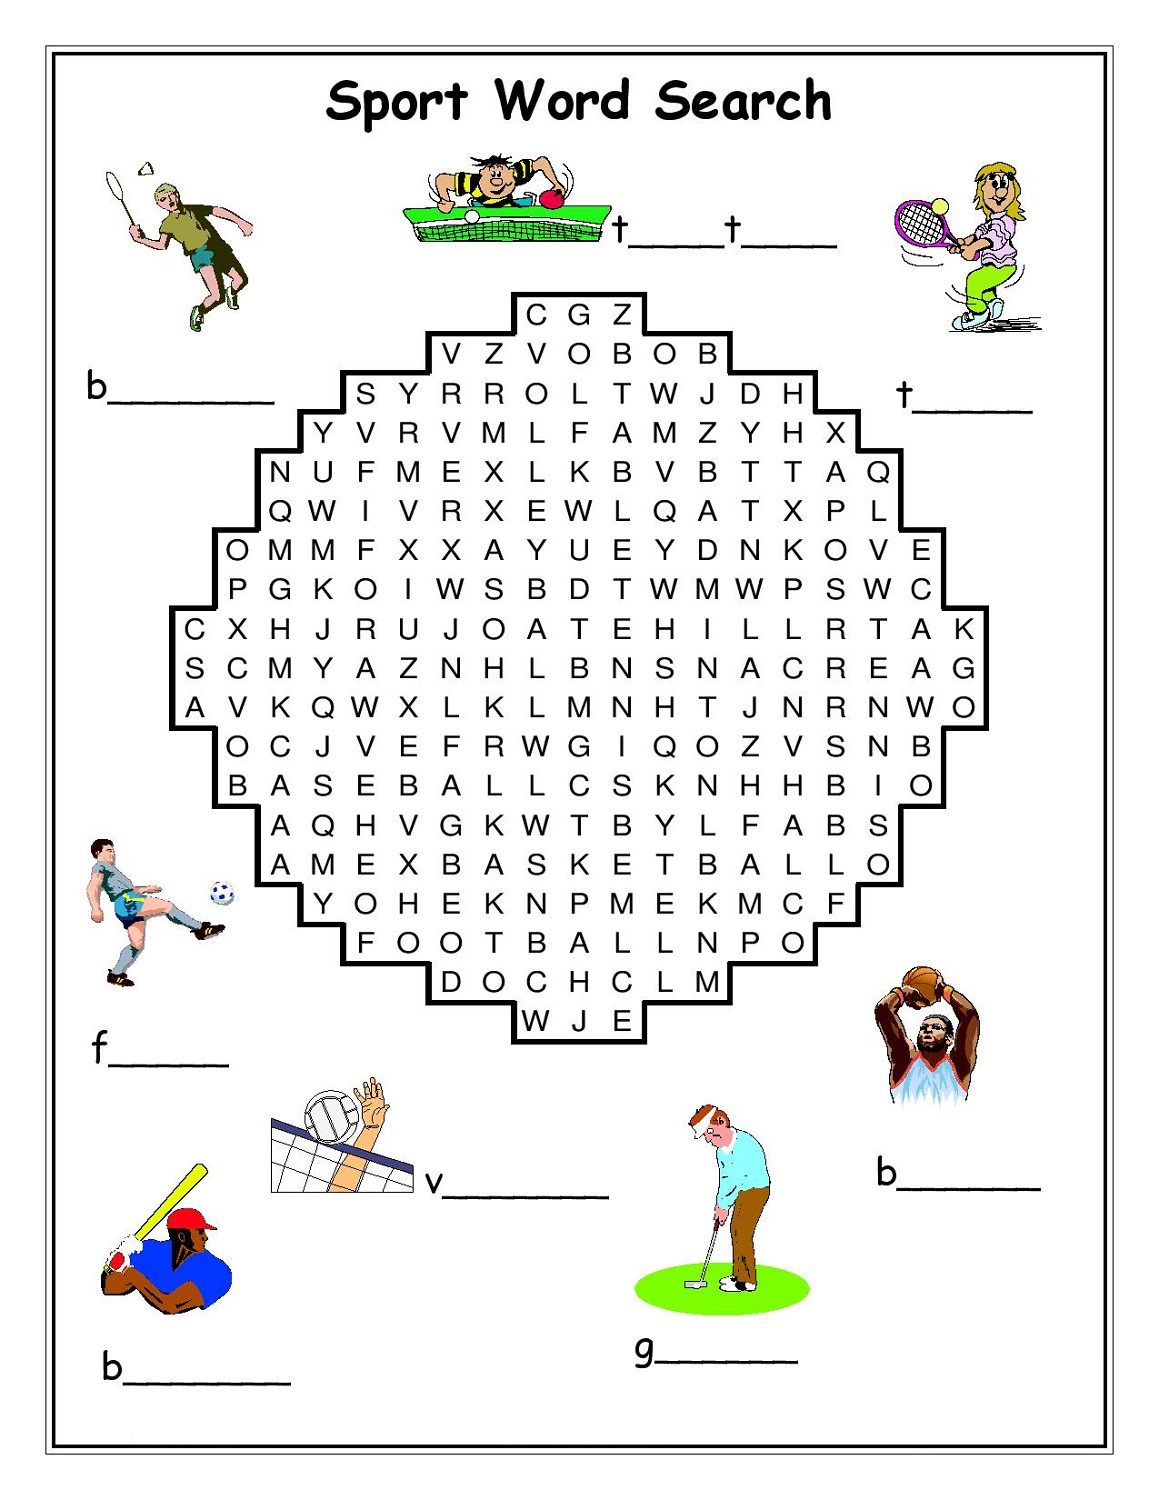 word-search-sports-pictures